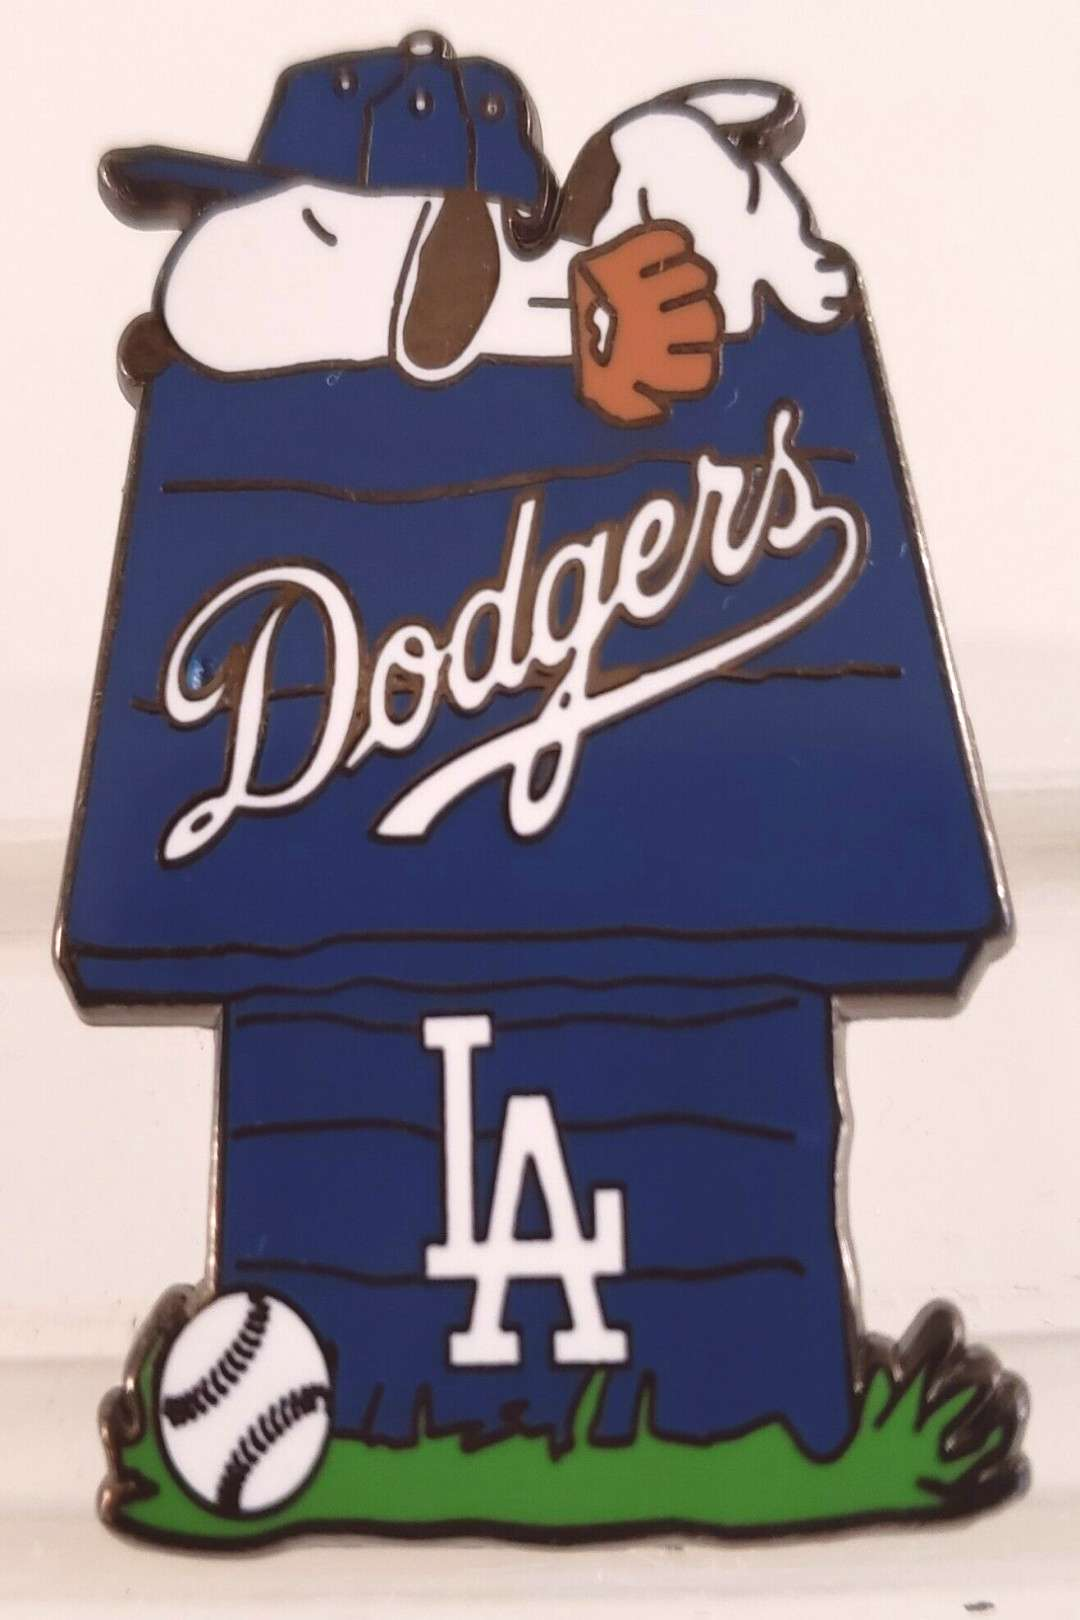 LOS ANGELES DODGERS SNOOPY DOGHOUSE PIN-GREAT GIFT IDEA! Free Shipping! - $14.90 | PicClick